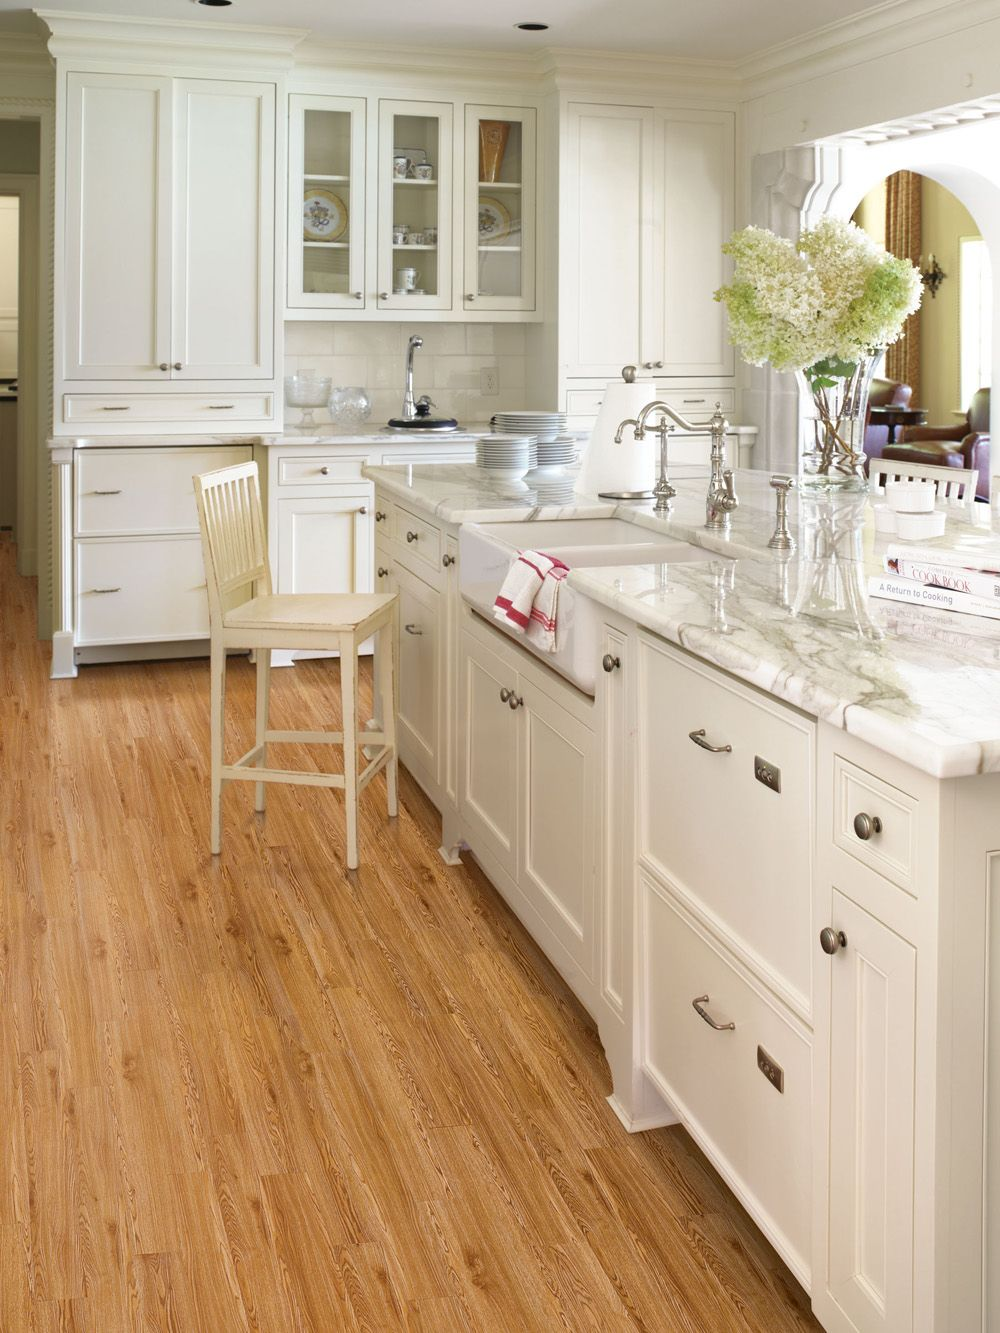 wood kitchen cabinets with wood floors for a cozy yet modern kitchen pair your light wood floors 2133